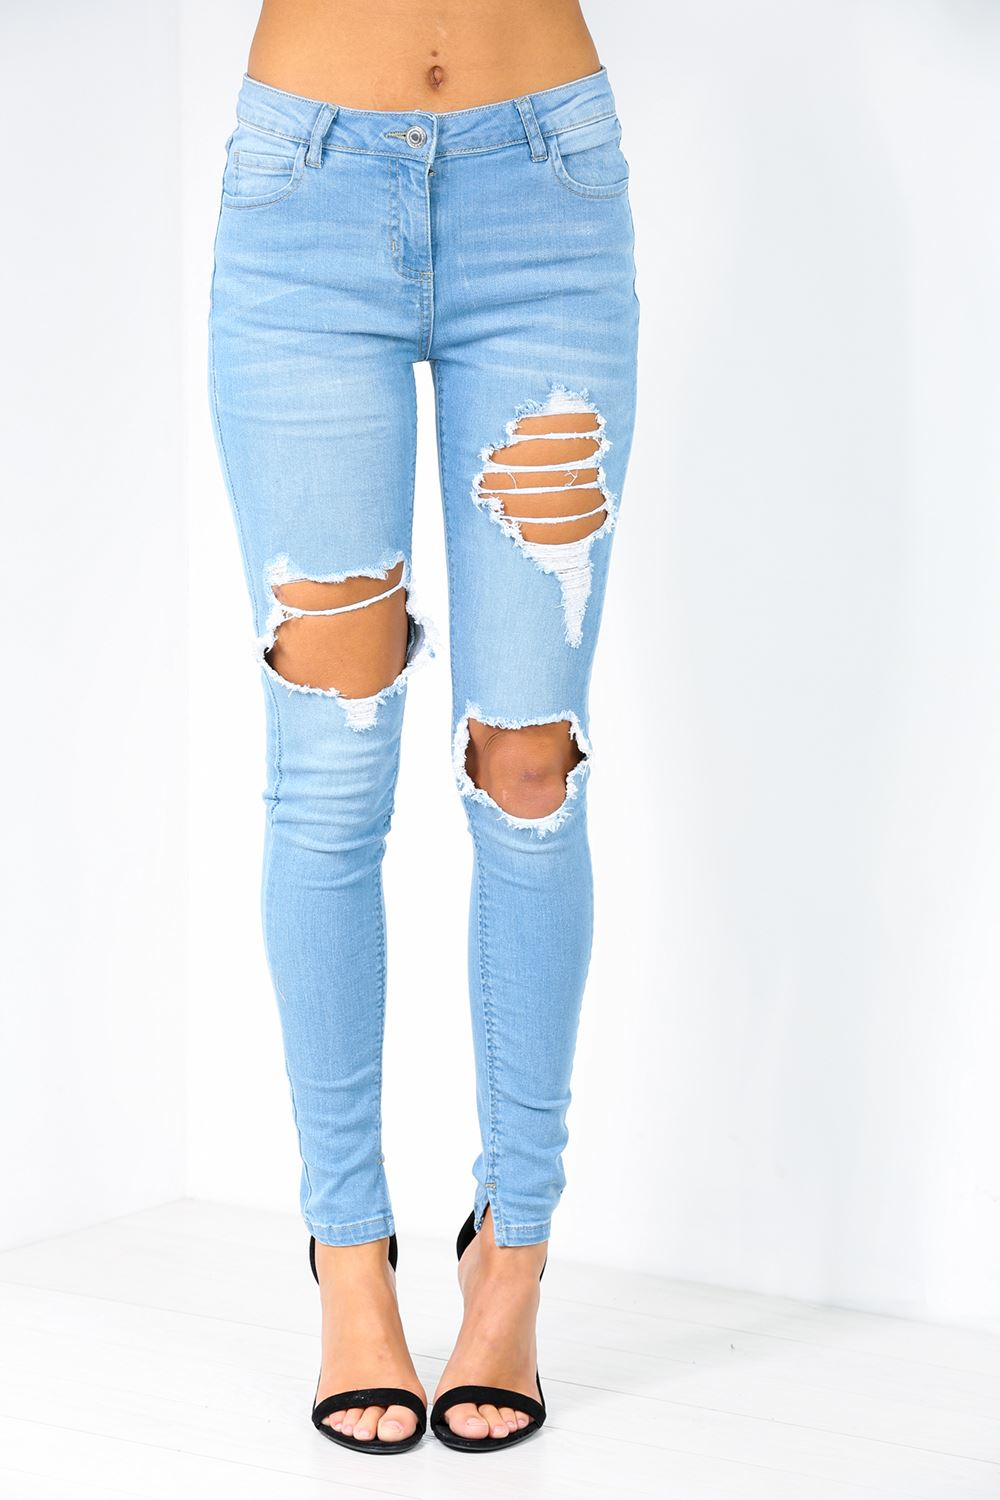 Womens Ripped Jeans Knee Cut Out Frayed Skinny Fit Stretchy Ladies ...